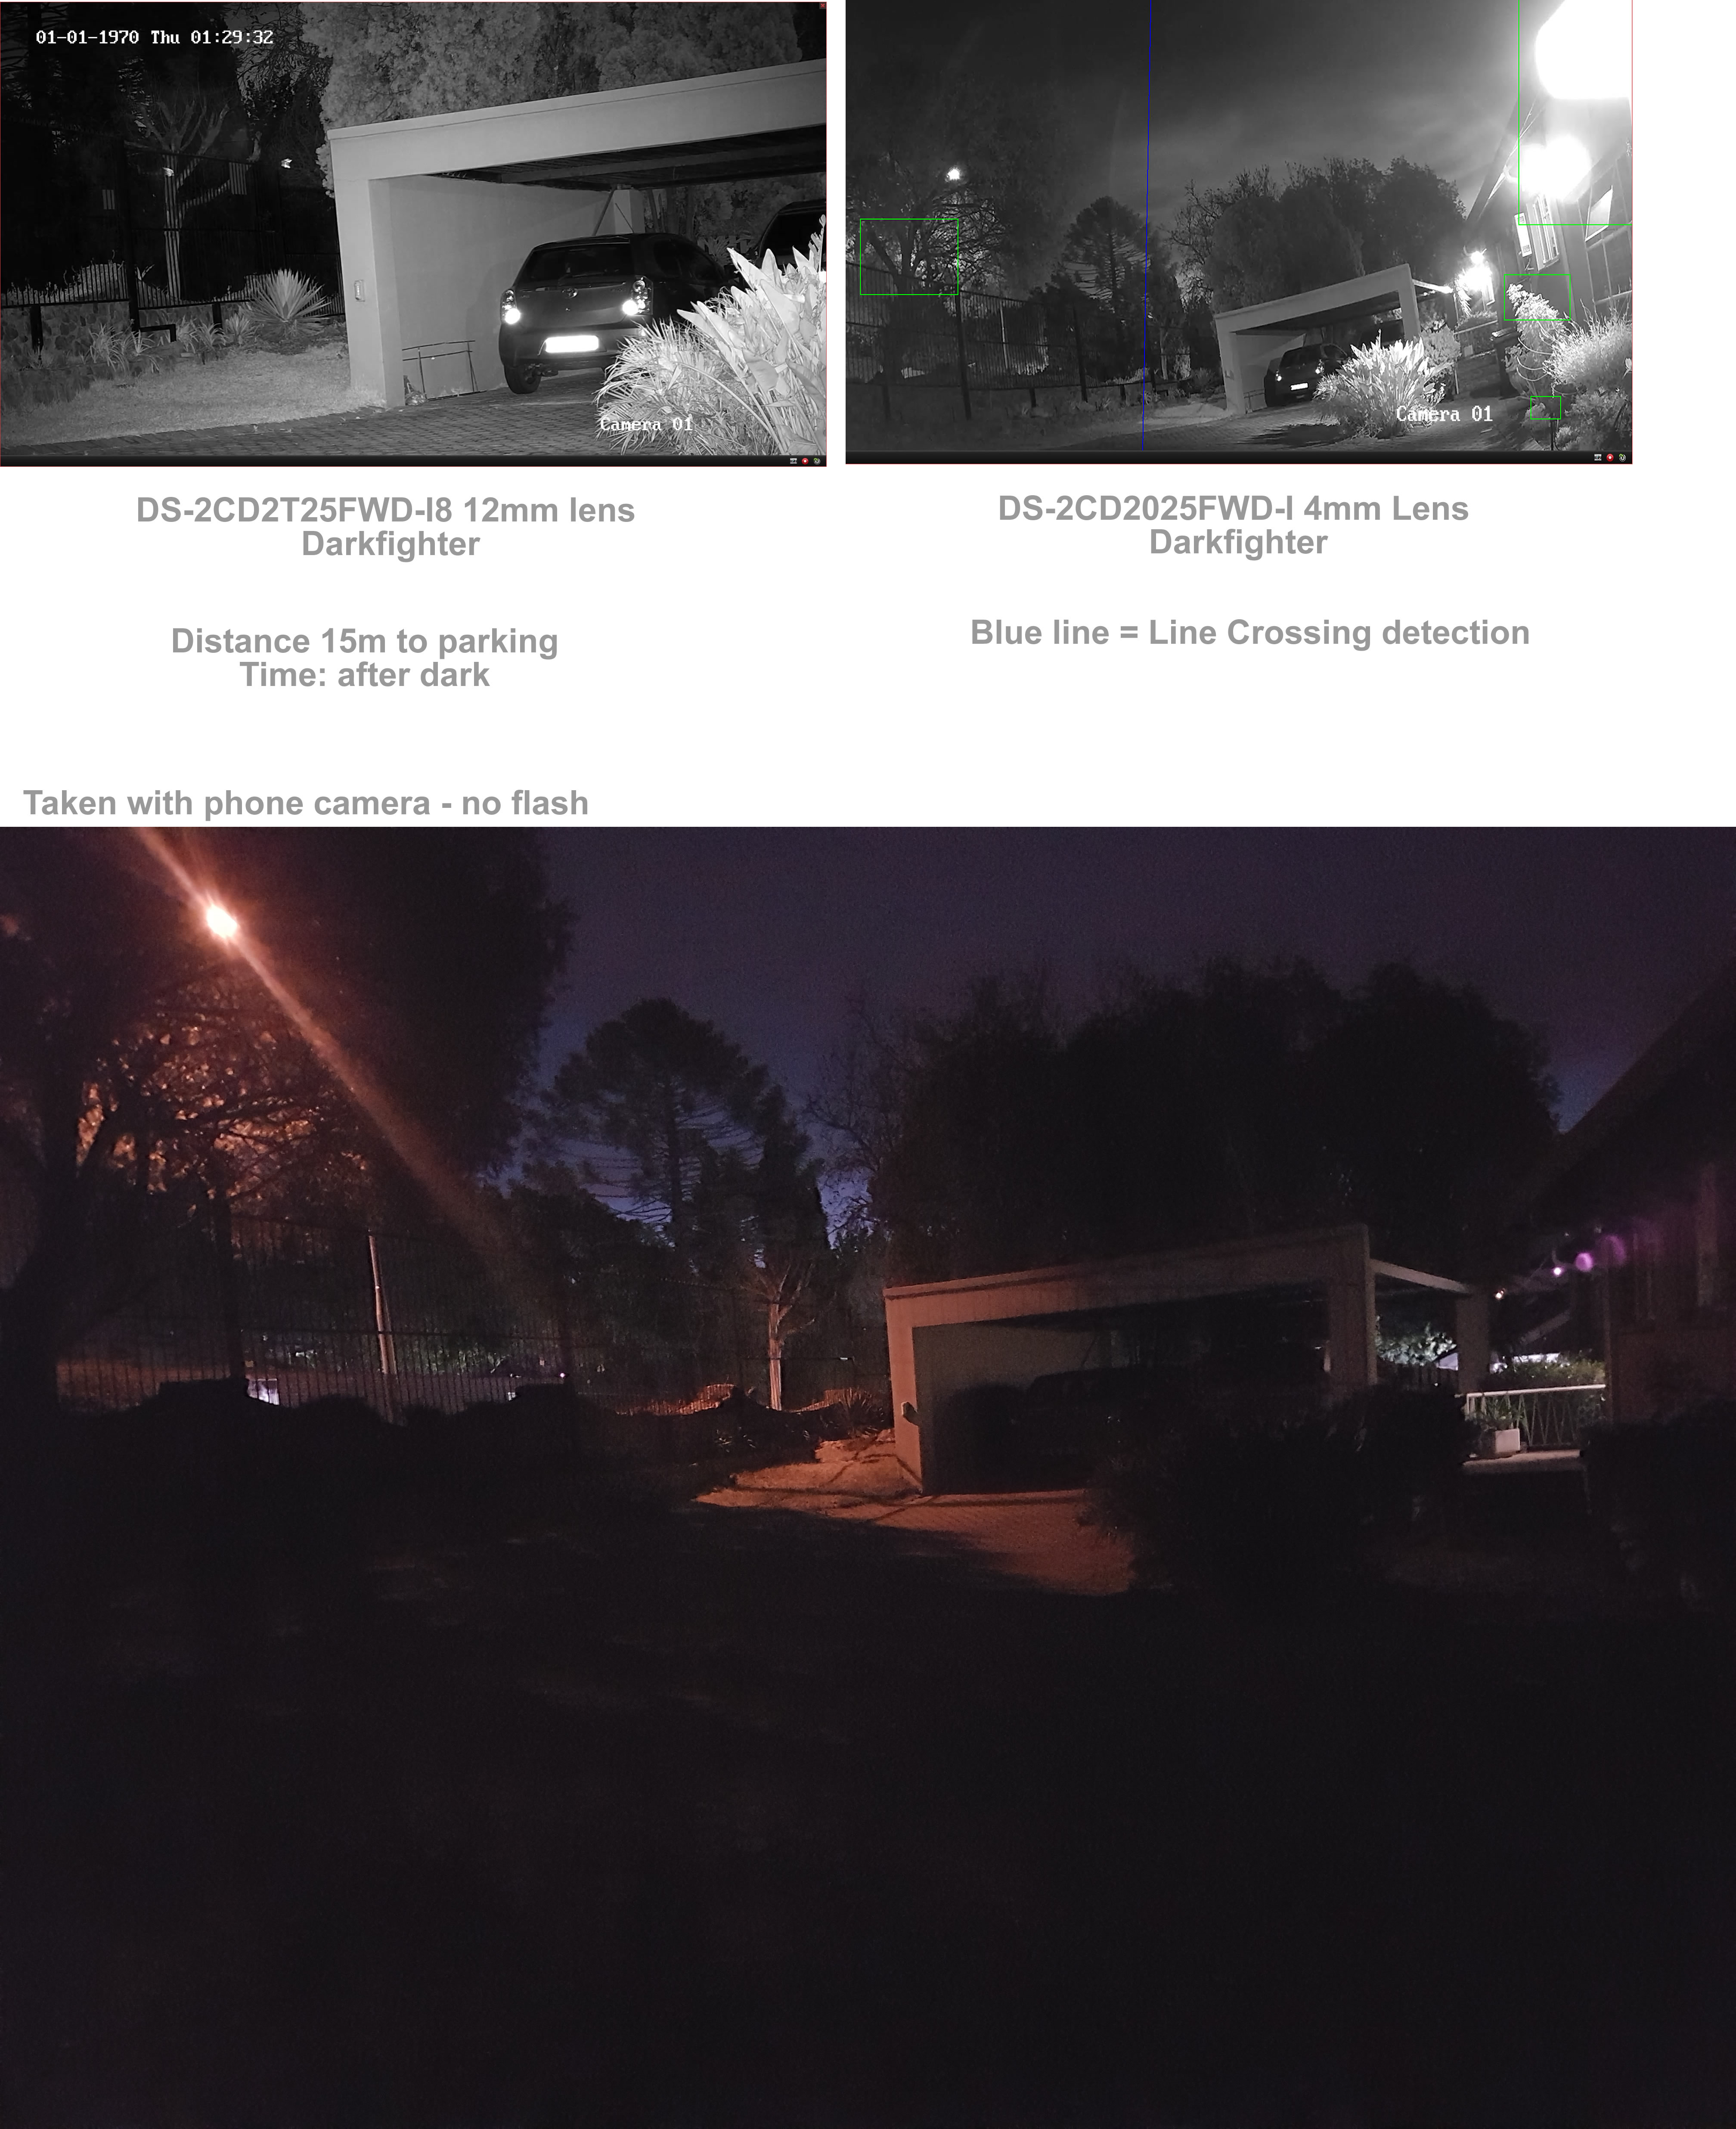 hikvision difference with 4mm and 12mm lens